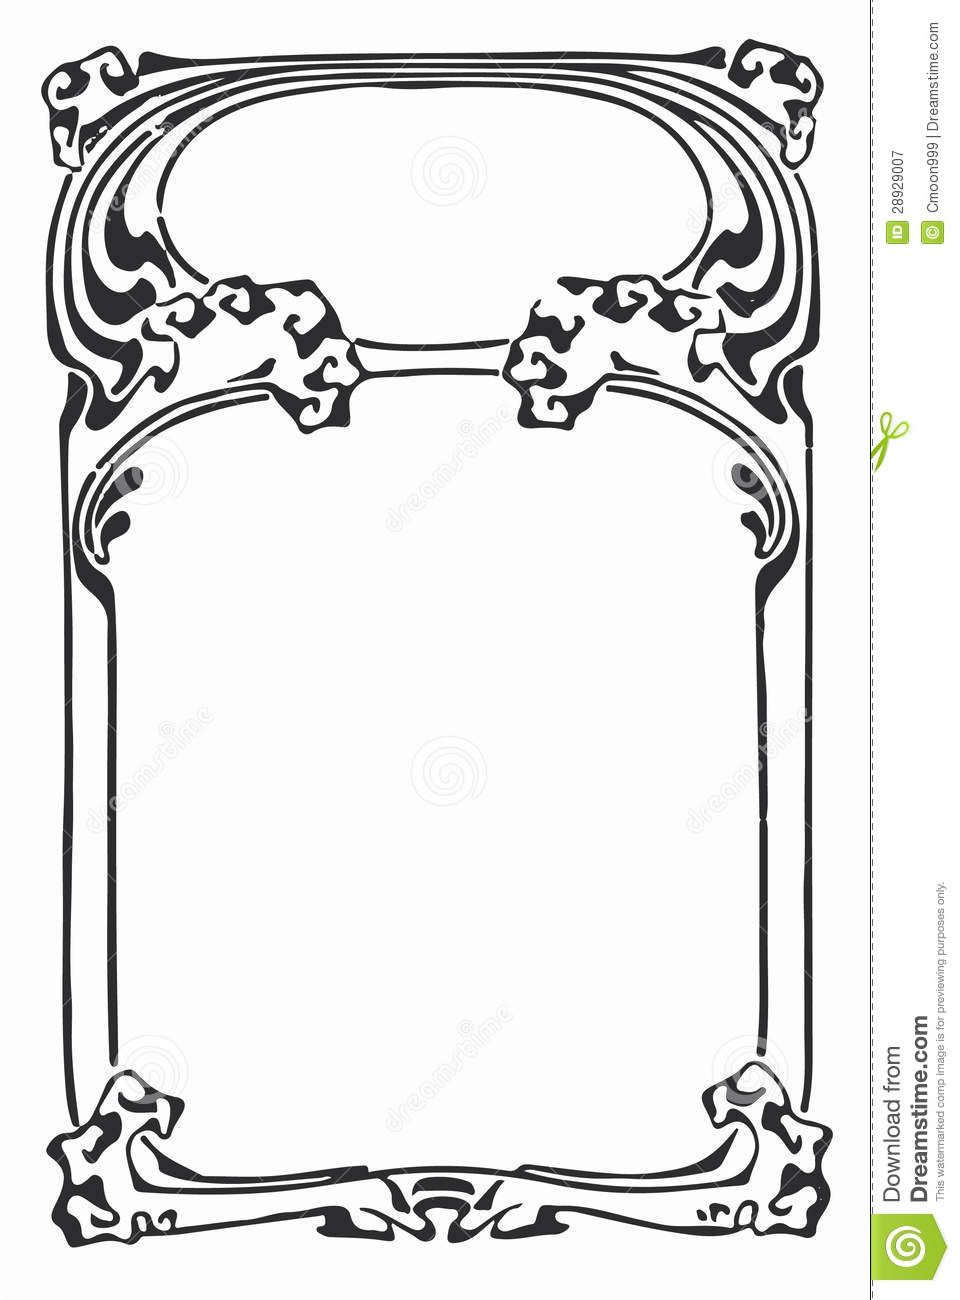 Art Nouveau Border Stock Illustrations, Cliparts And Royalty Free ...